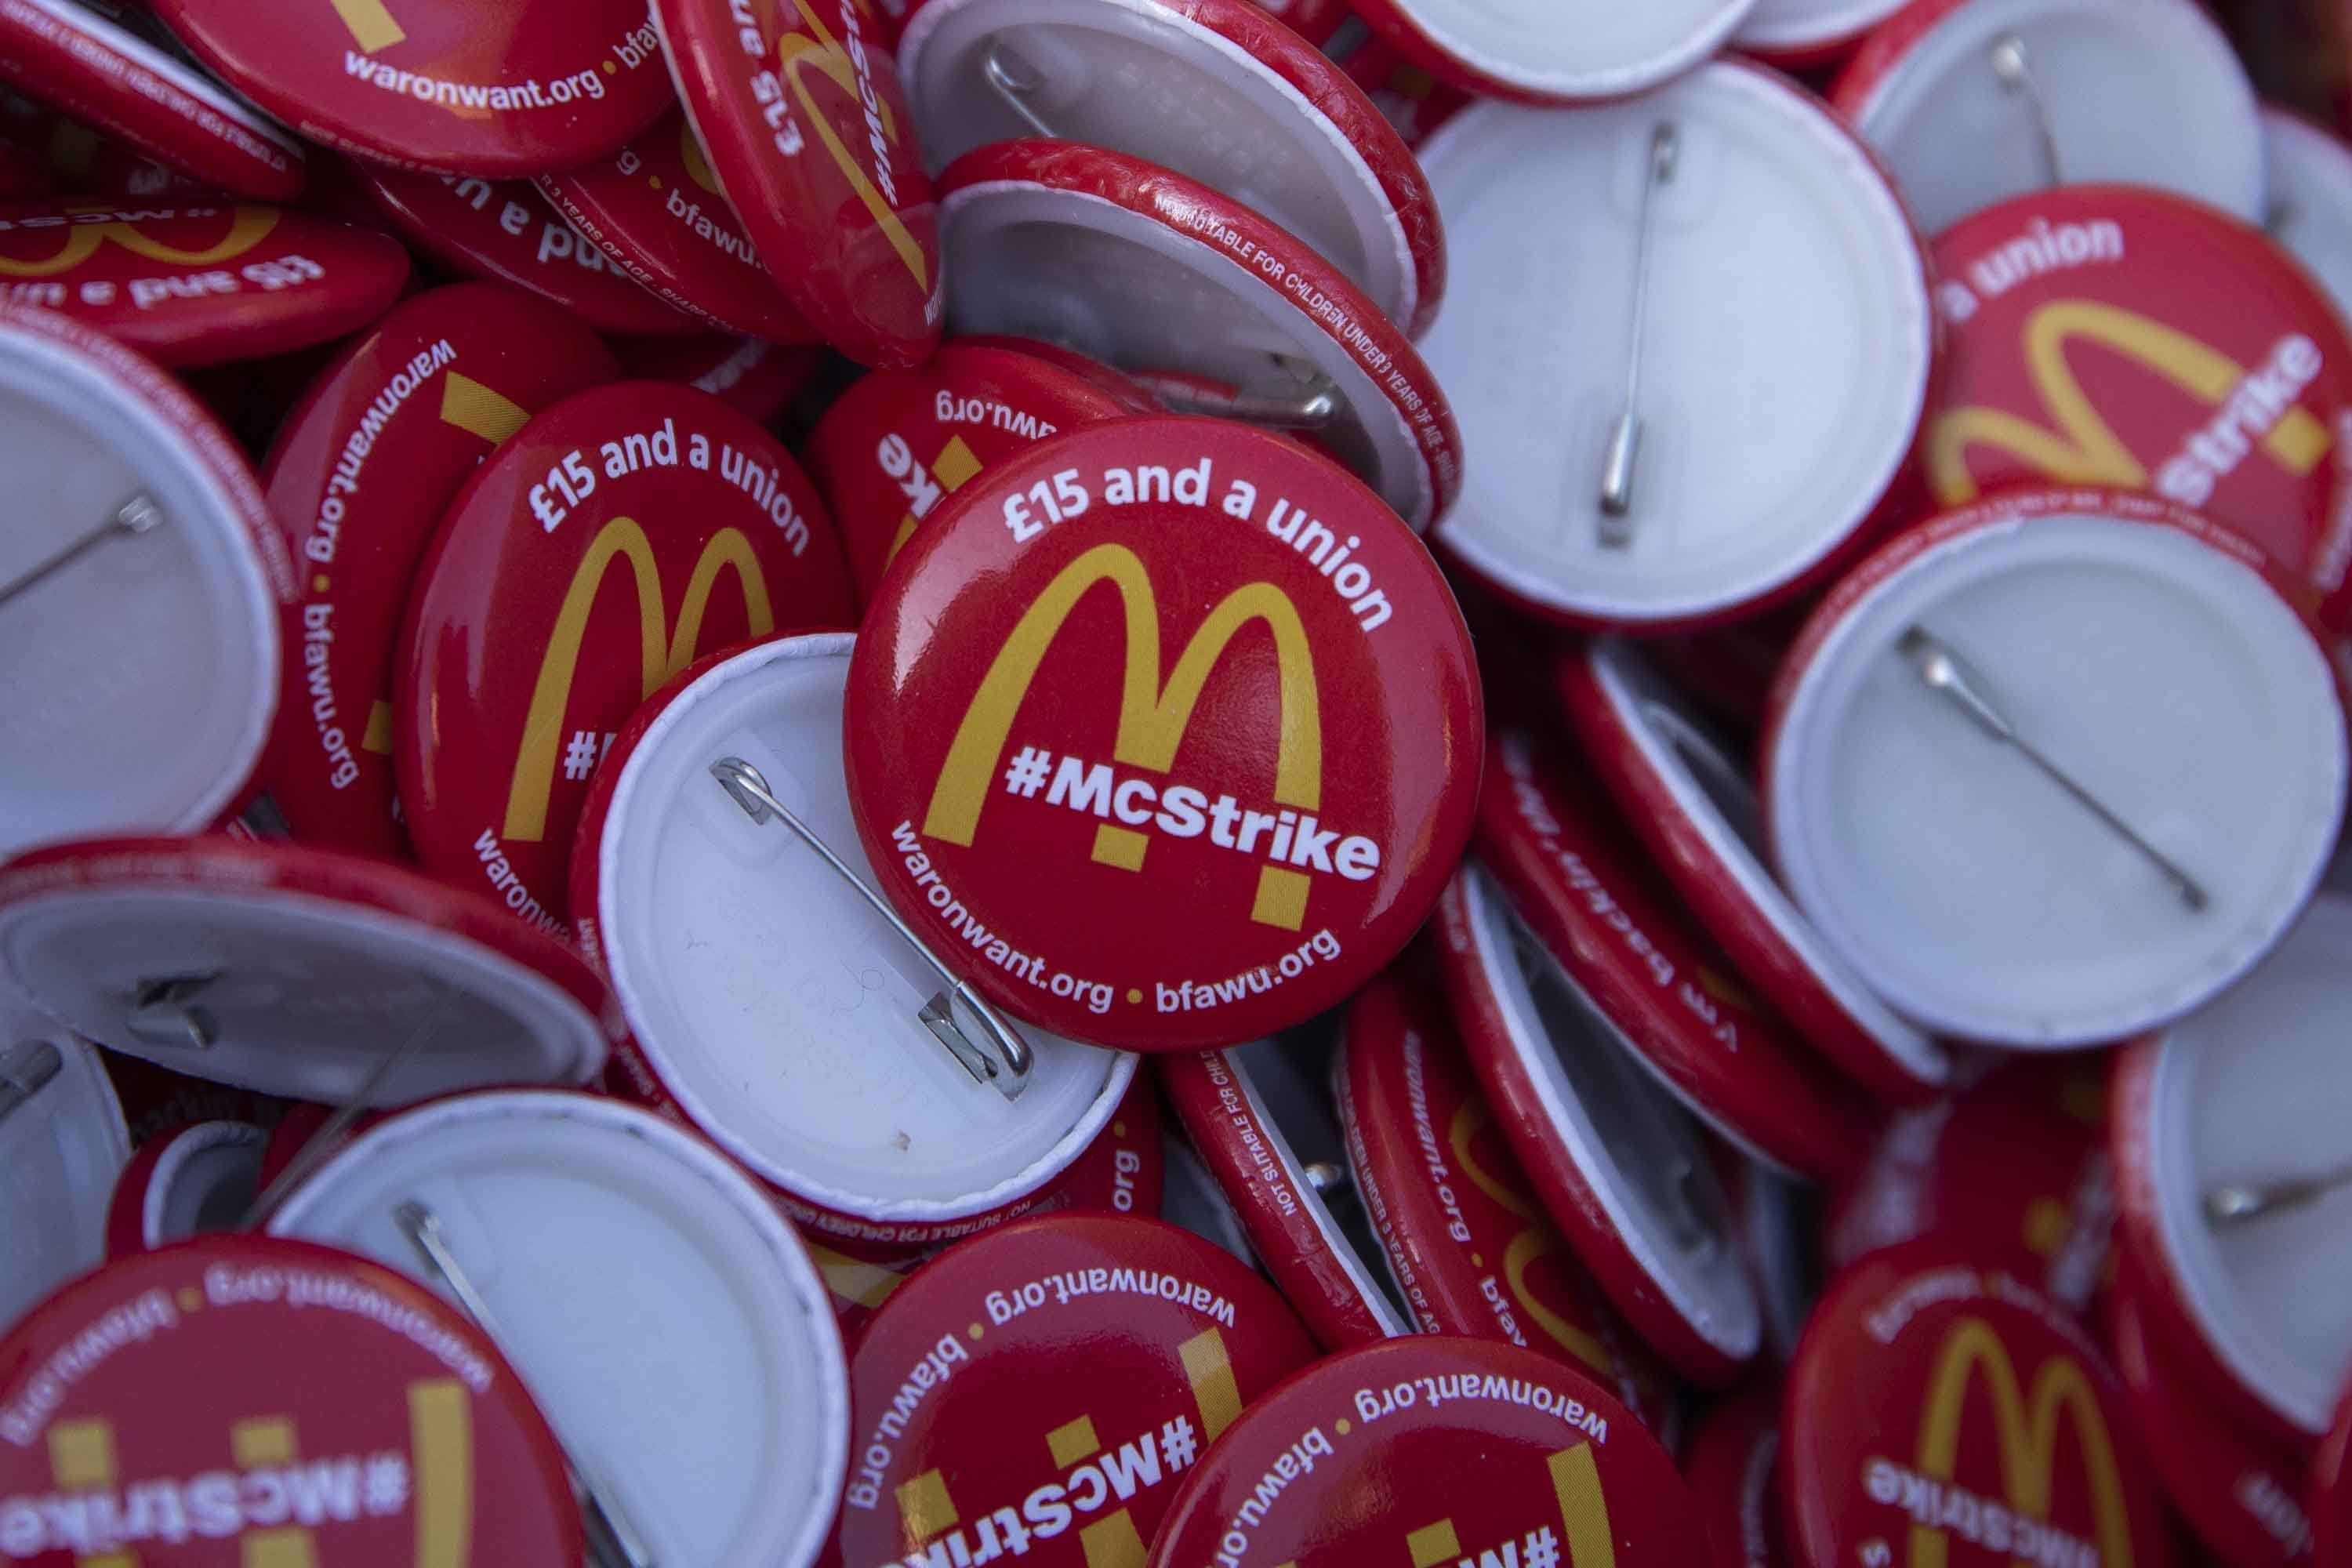 McDonald's workers strike in London to demand higher pay